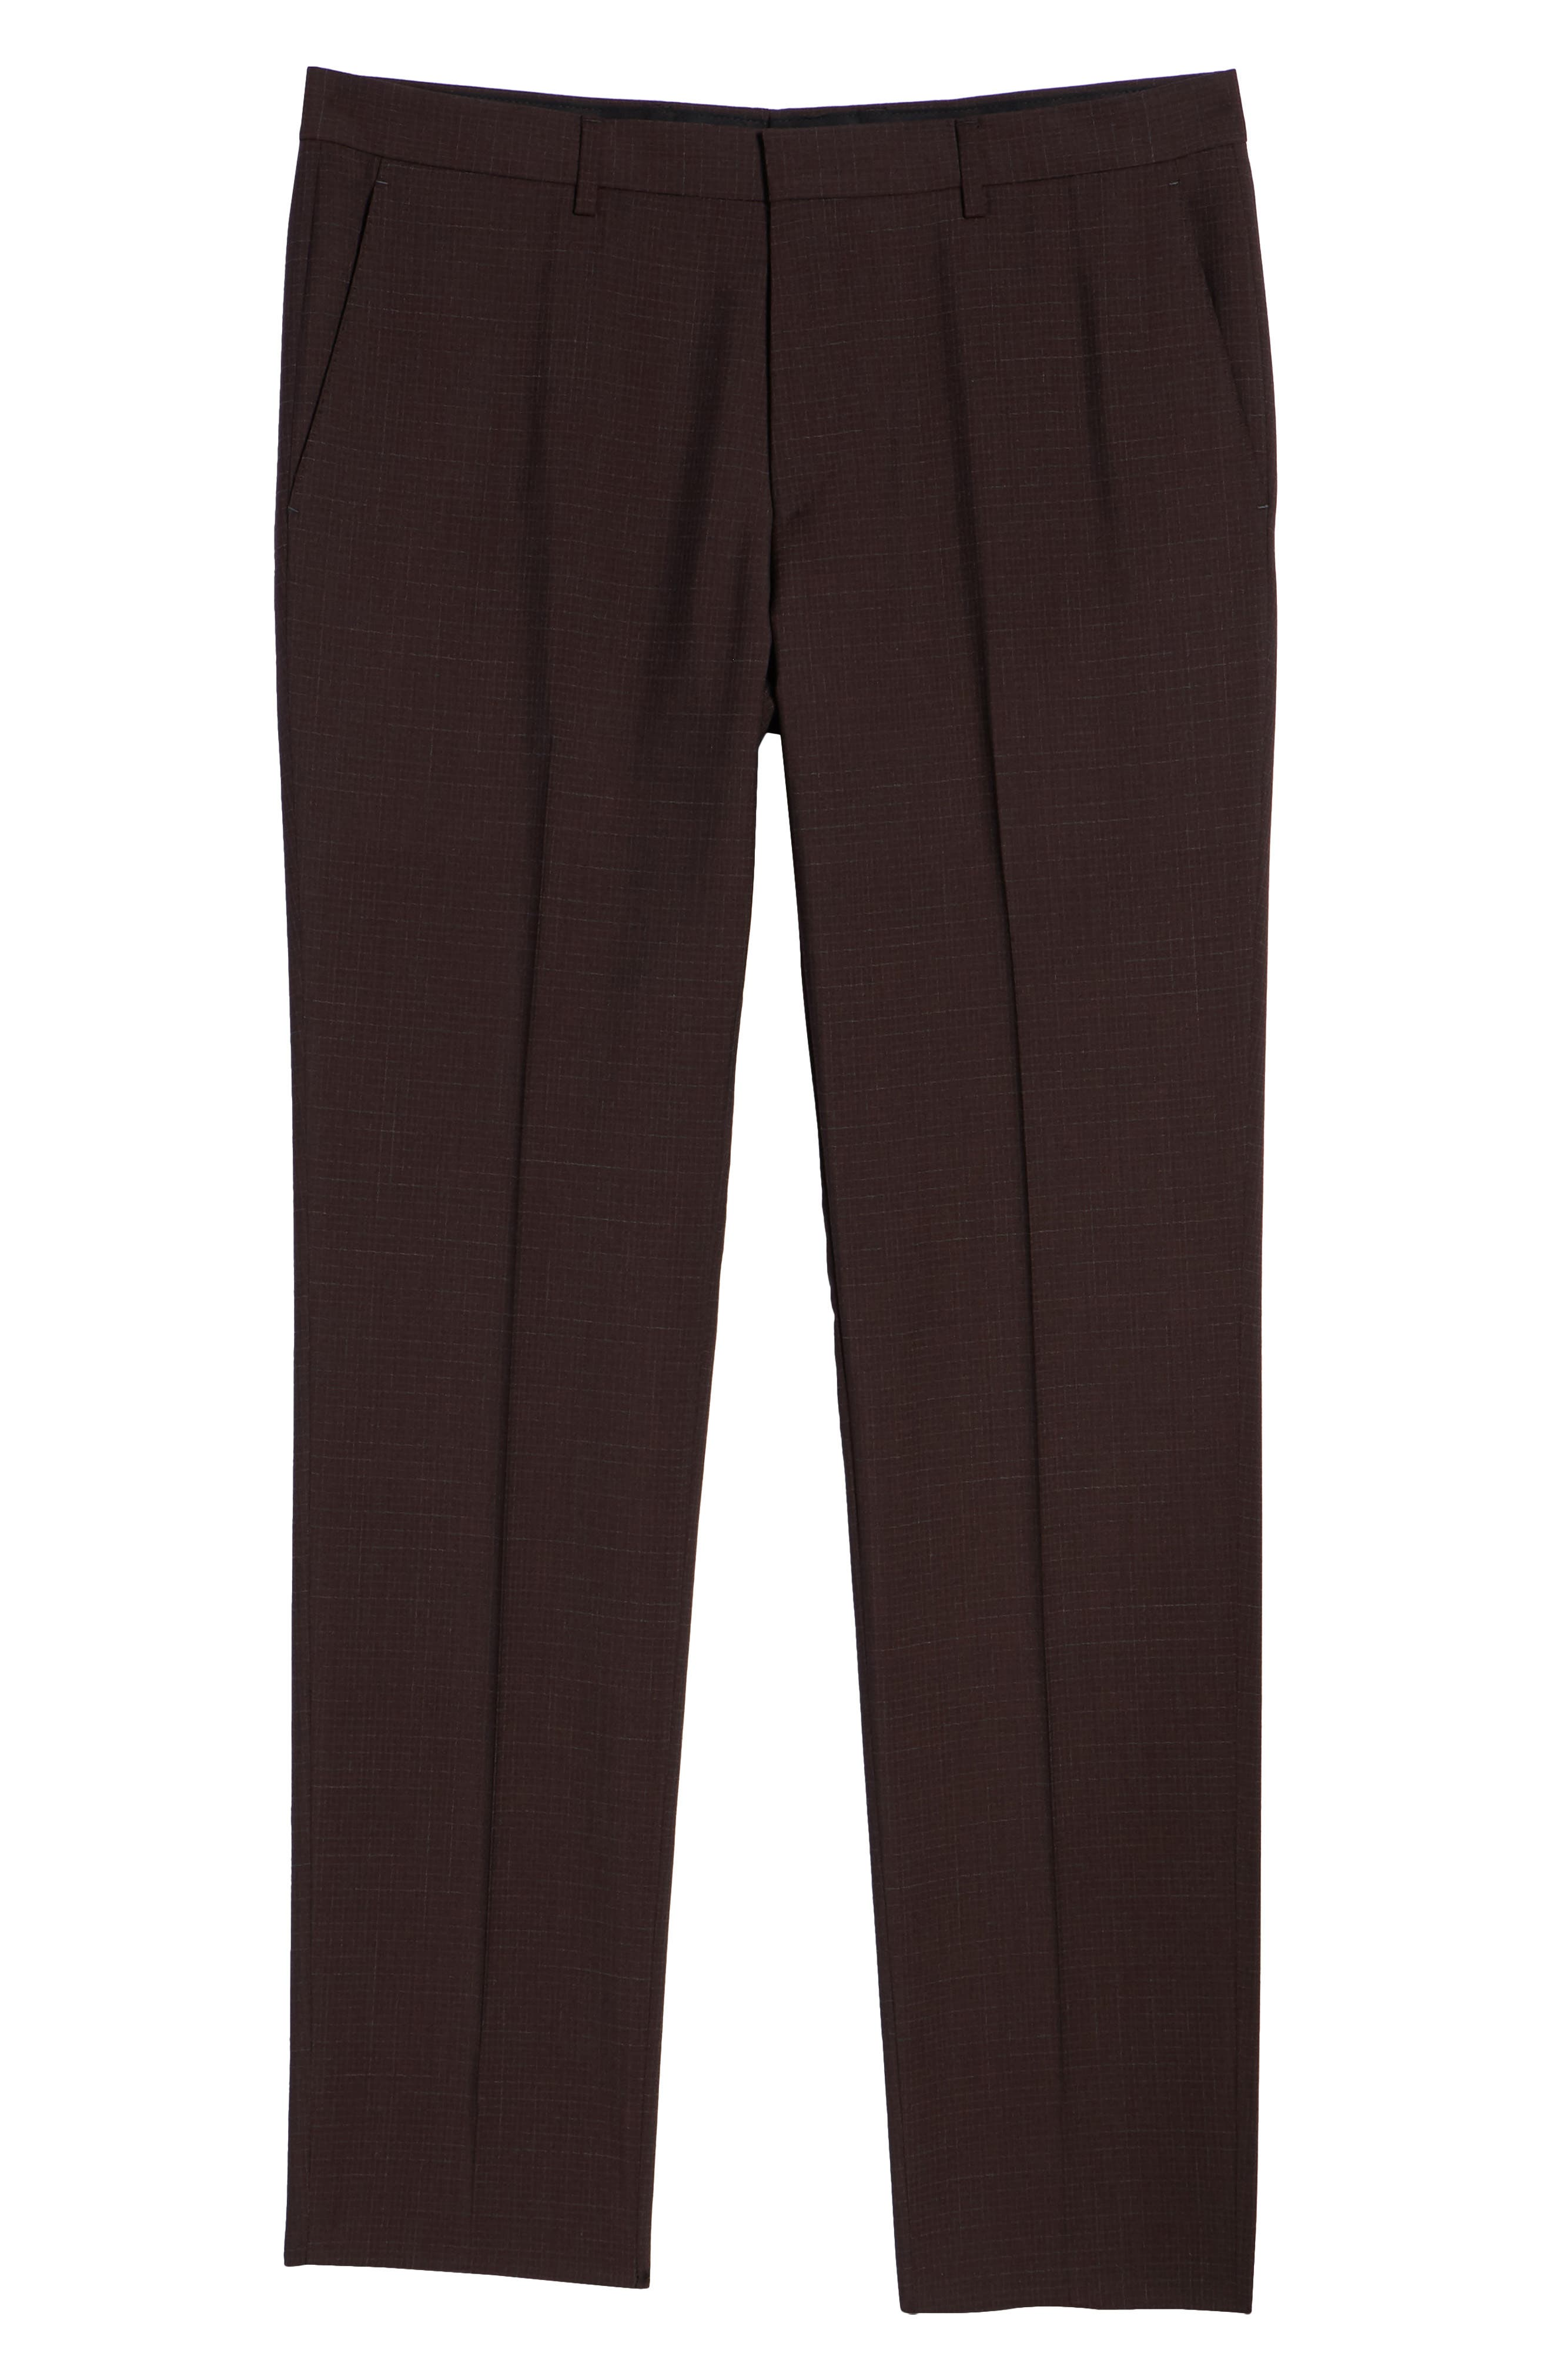 Genesis Flat Front Check Wool Trousers,                             Alternate thumbnail 6, color,                             MAROON